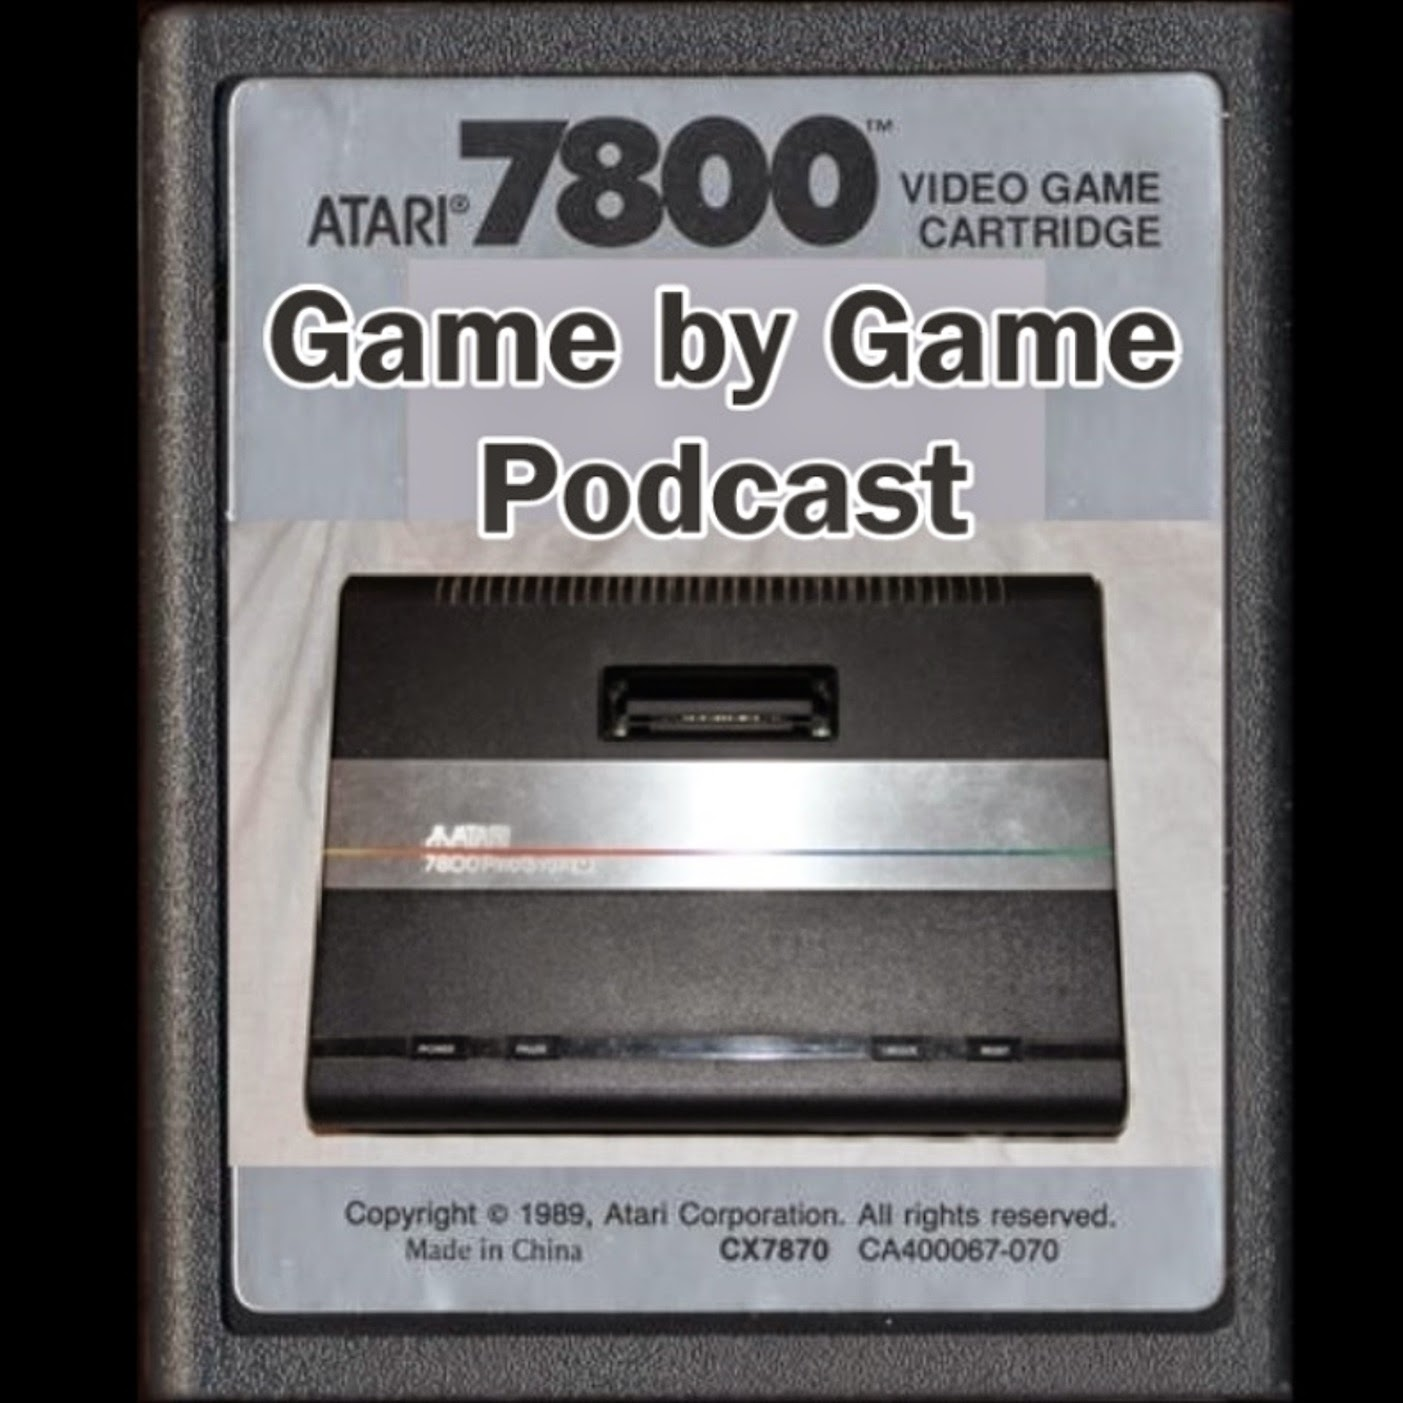 The Atari 7800 Game By Game Podcast